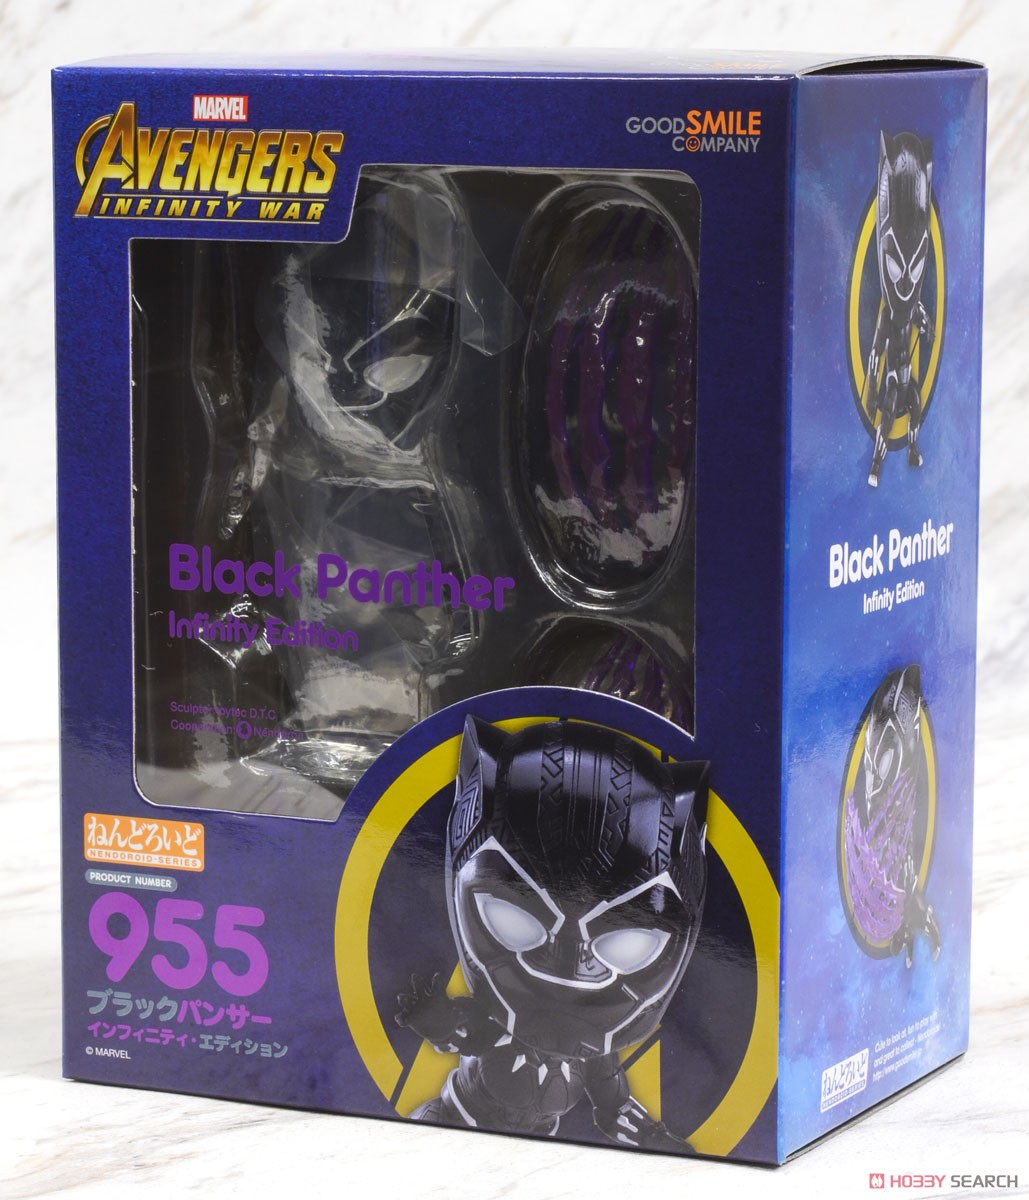 Nendoroid Black Panther: Infinity Edition (Completed) Package1